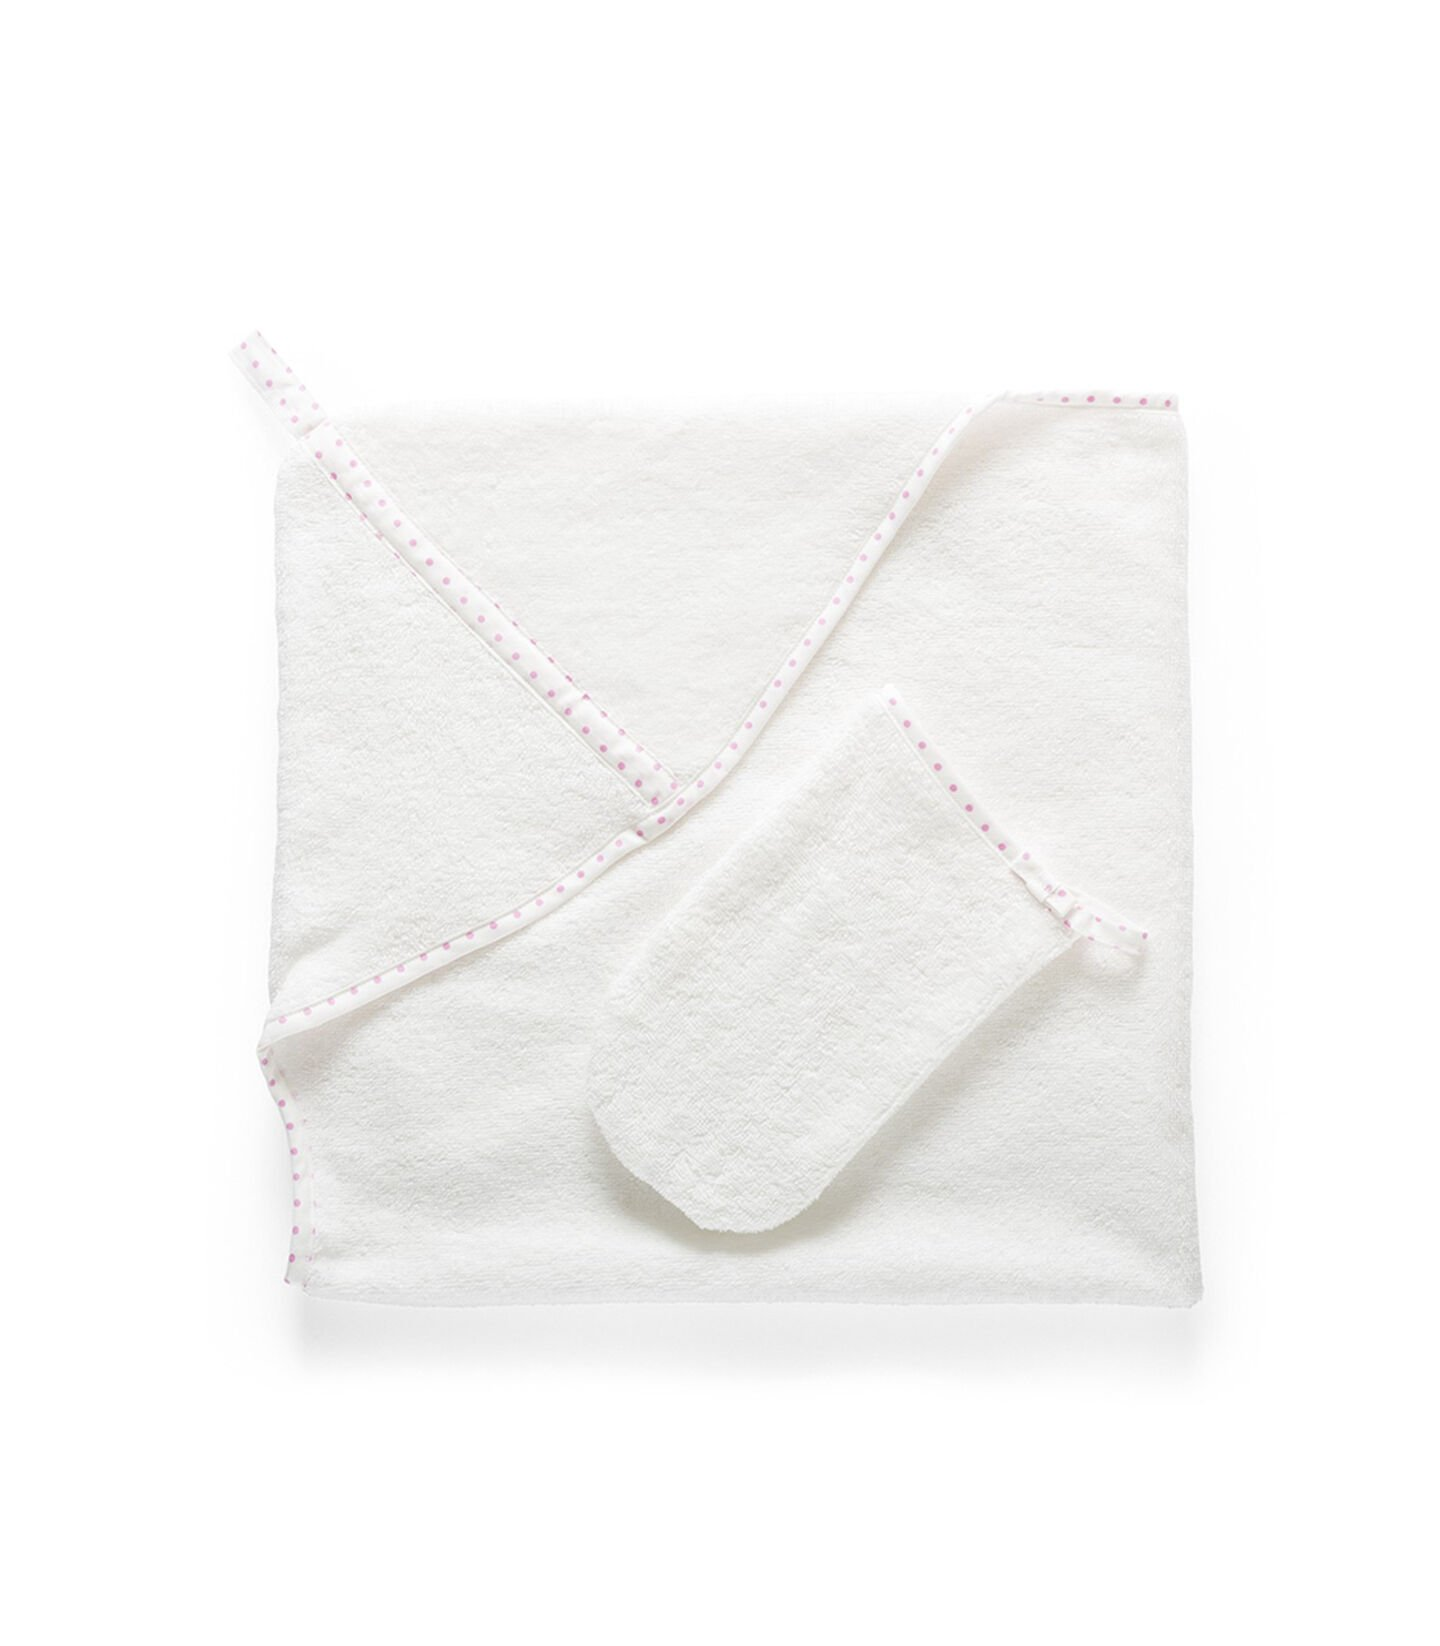 Stokke® Textiles. Hooded Towel, Pink Dots. Detail.